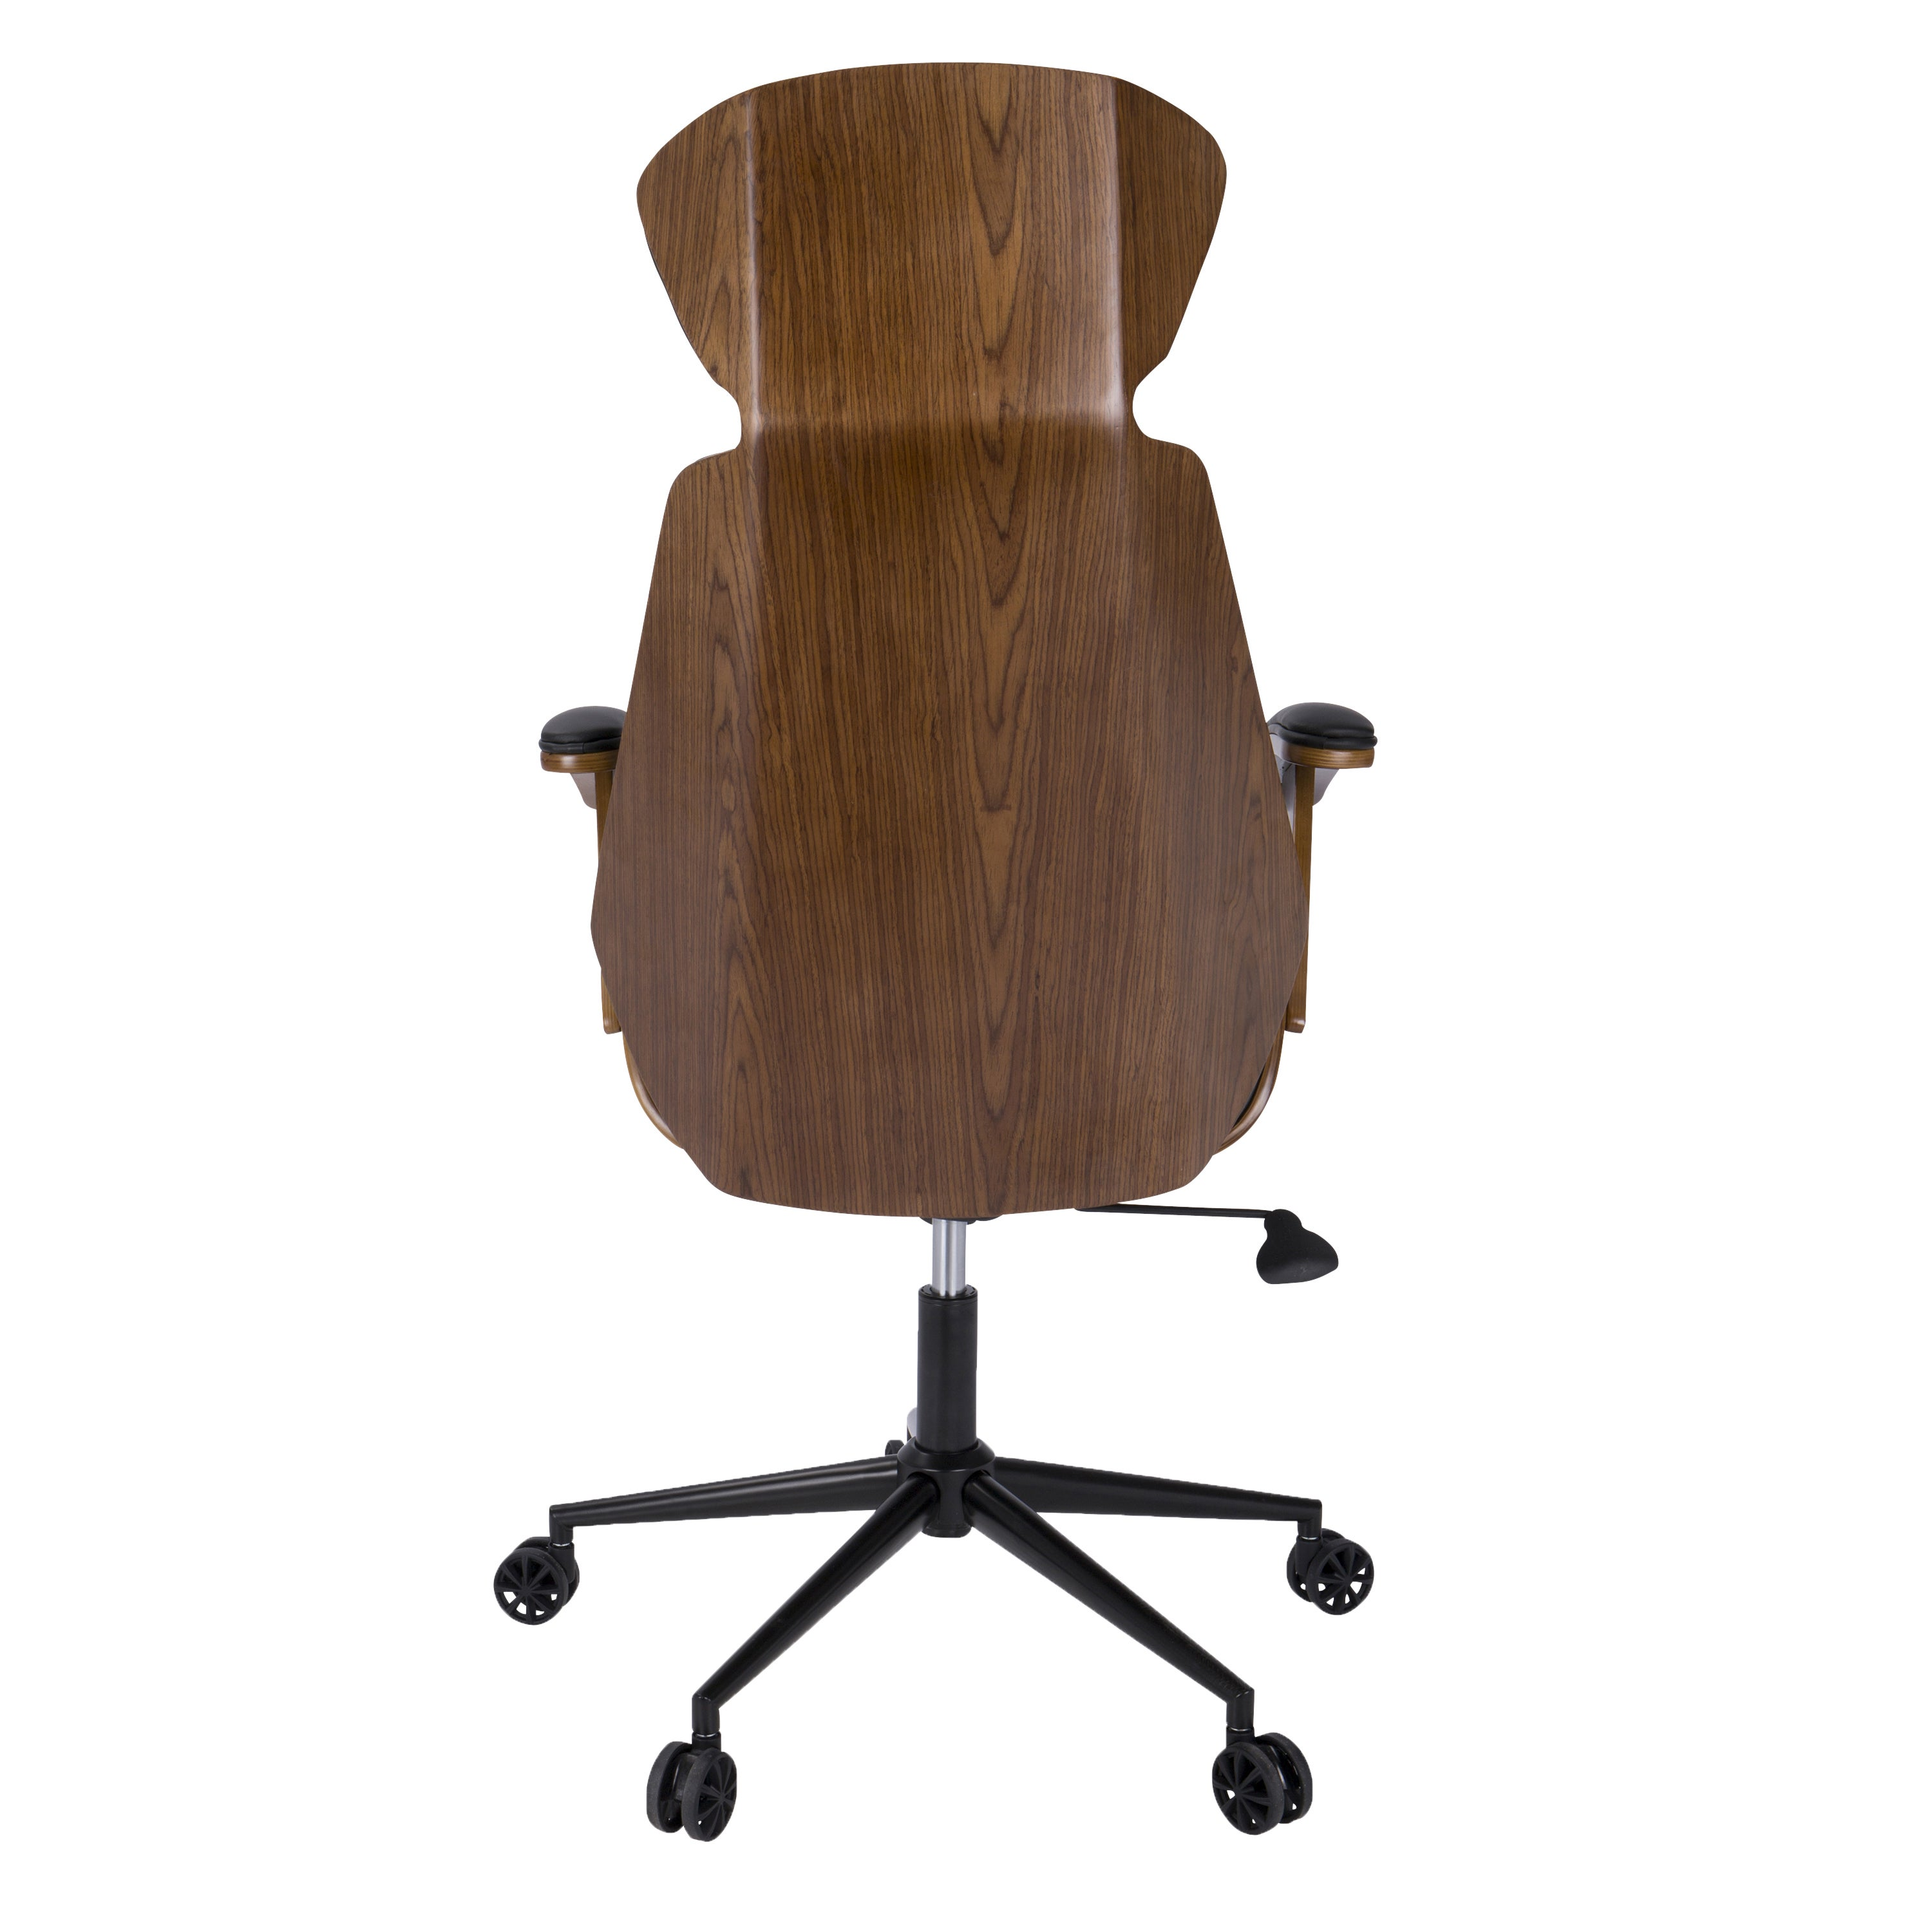 Spectre Mid Century Modern Walnut Wood Office Chair On Free Shipping Today 12218702